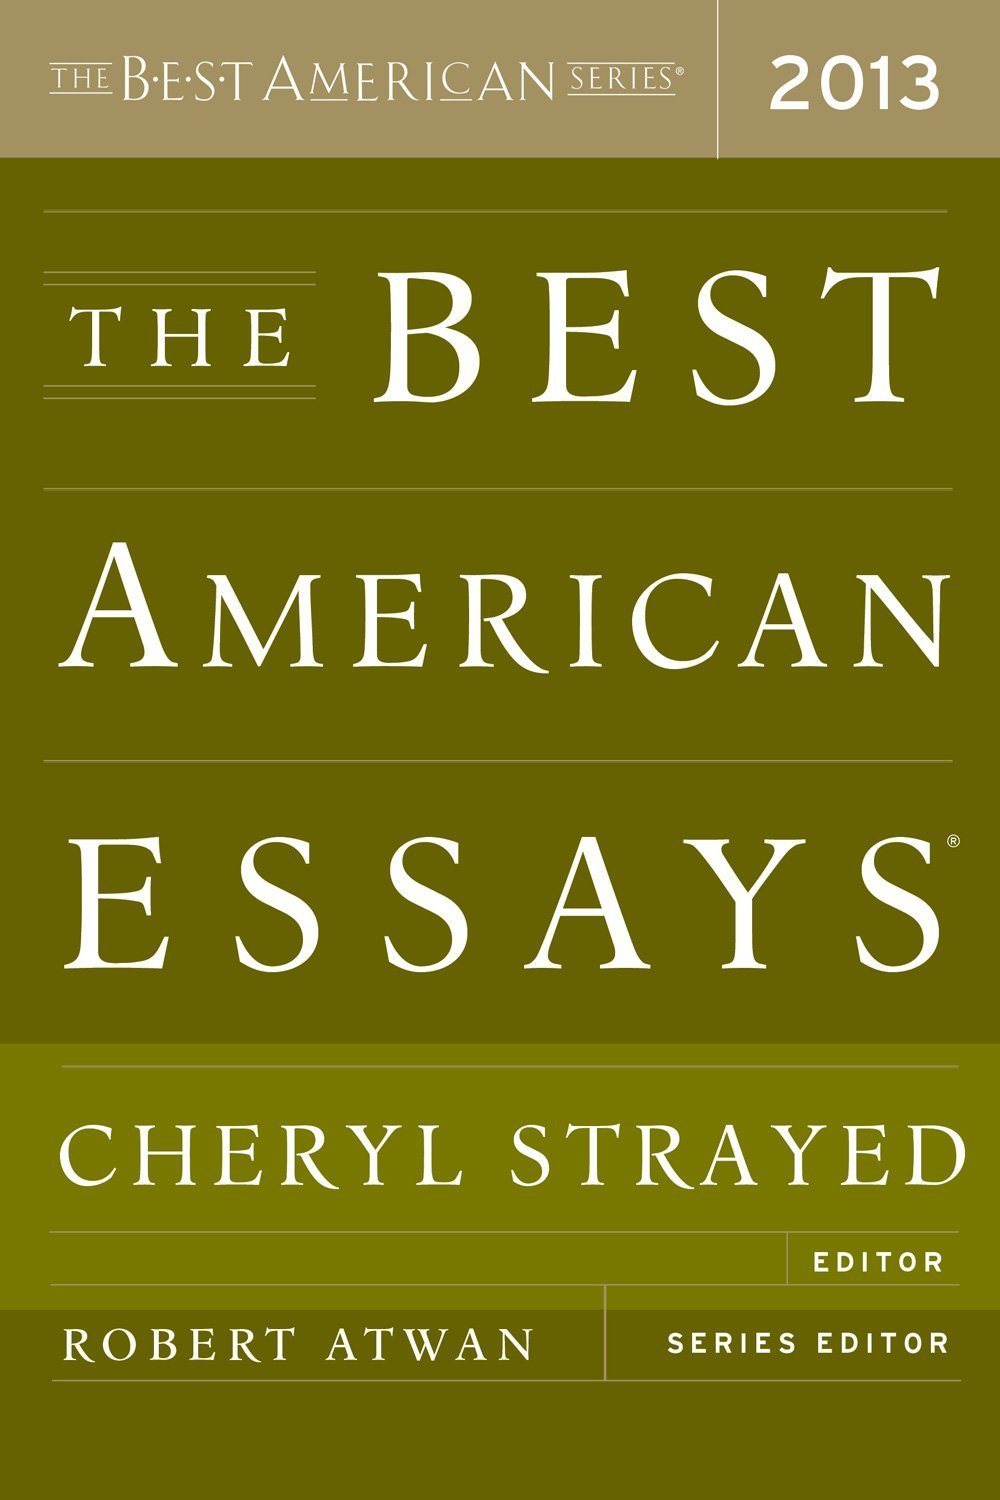 003 Best American Essays Essay Example Striking 2017 Pdf Submissions 2019 Of The Century Table Contents Full